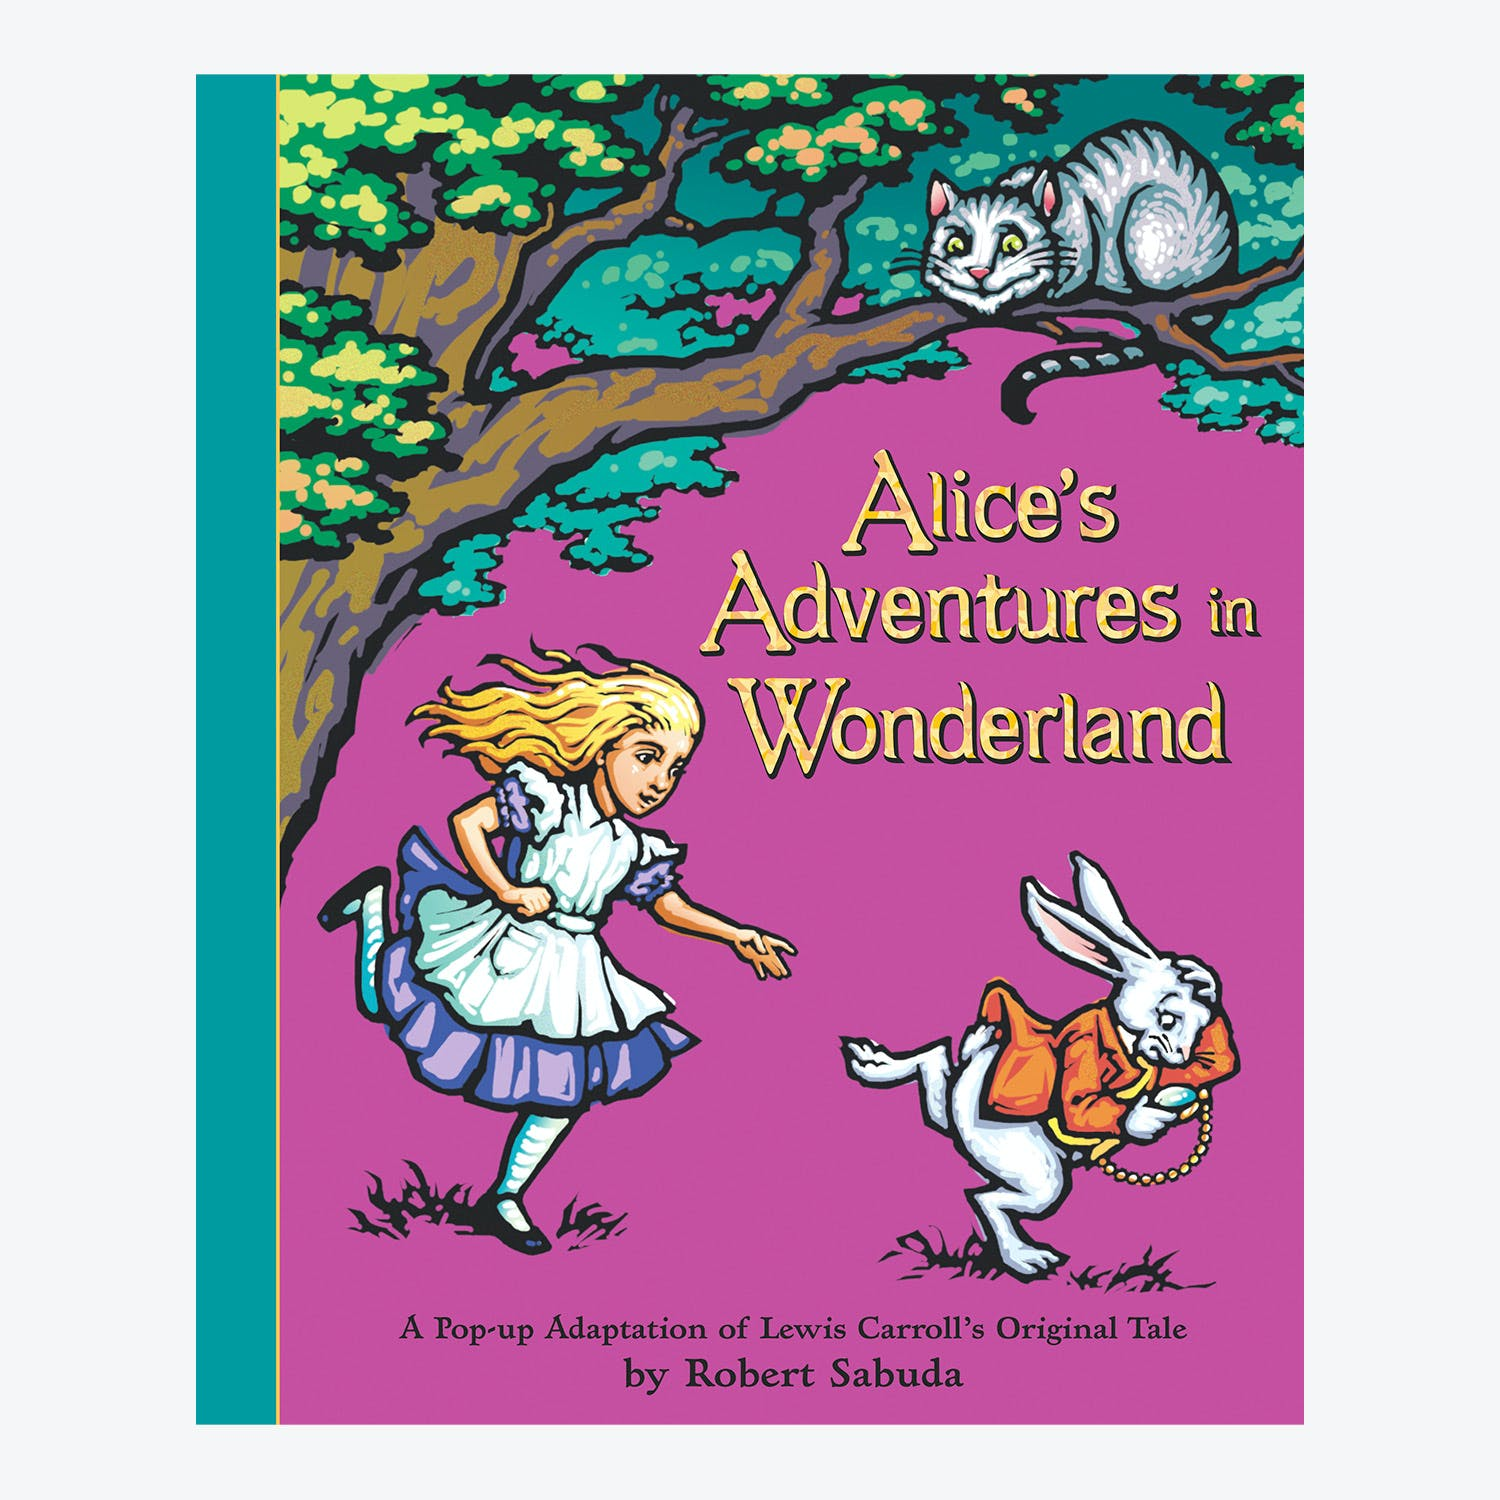 Alice's Adventures in Wonderland: A Pop-up Adaptation by Lewis Carroll & Robert Sabuda